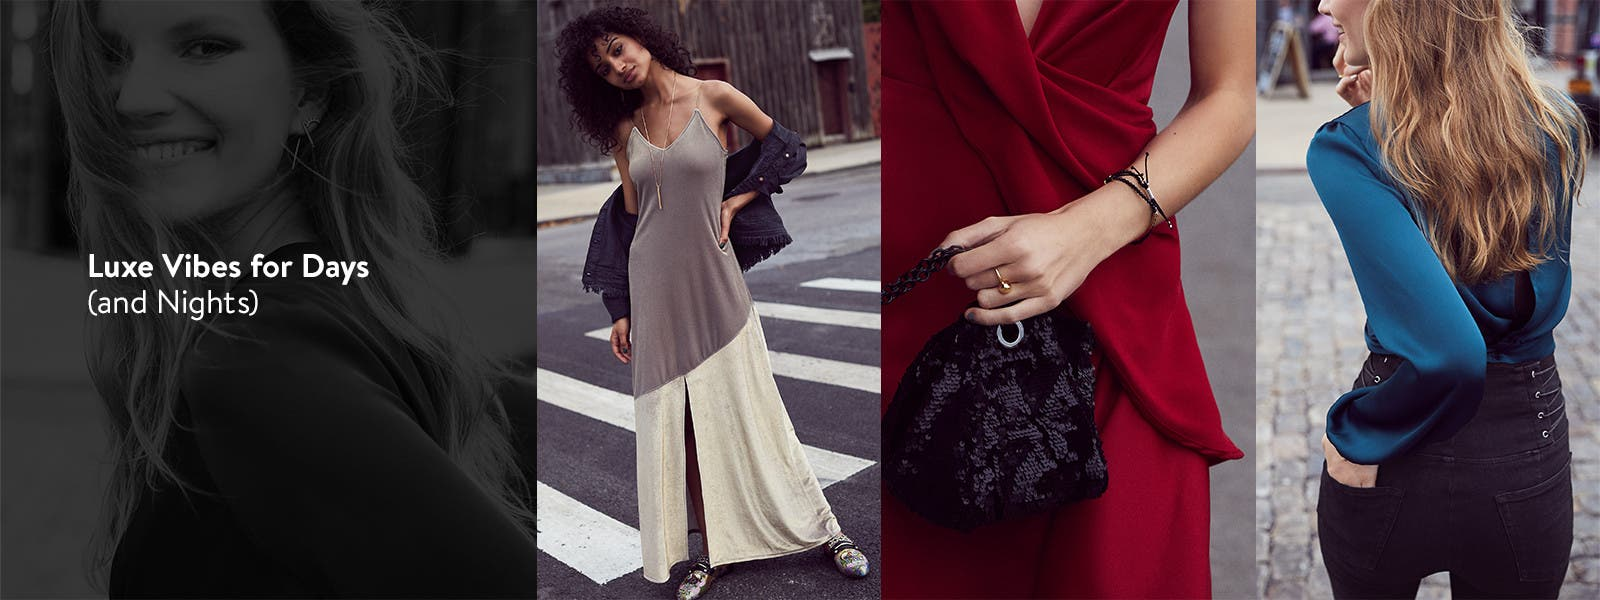 Luxe vibes for days and nights: lush fabrics and romantic details.